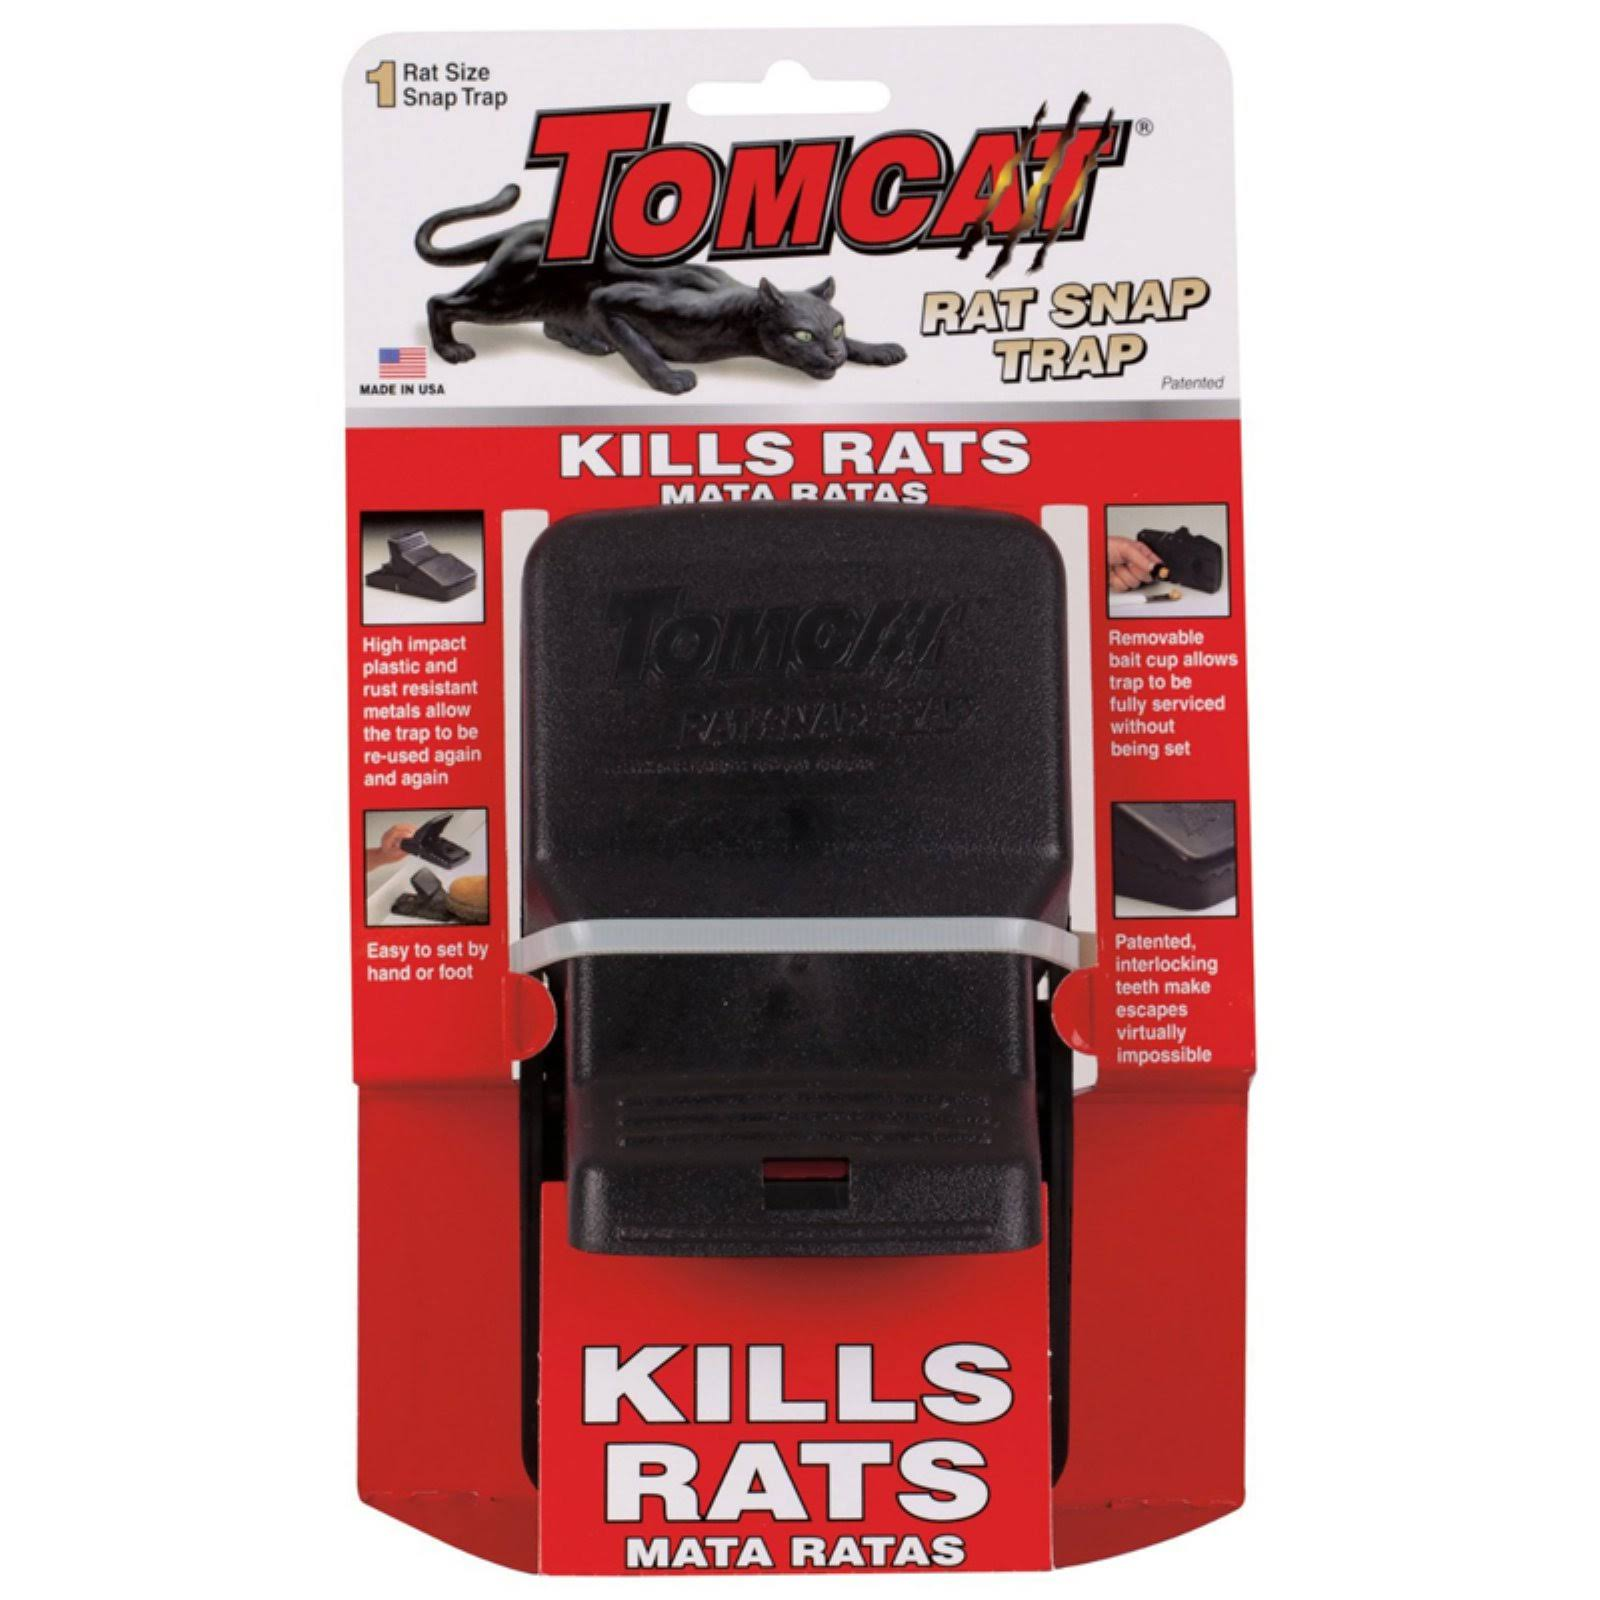 Tomcat Rat Snap Rat Trap